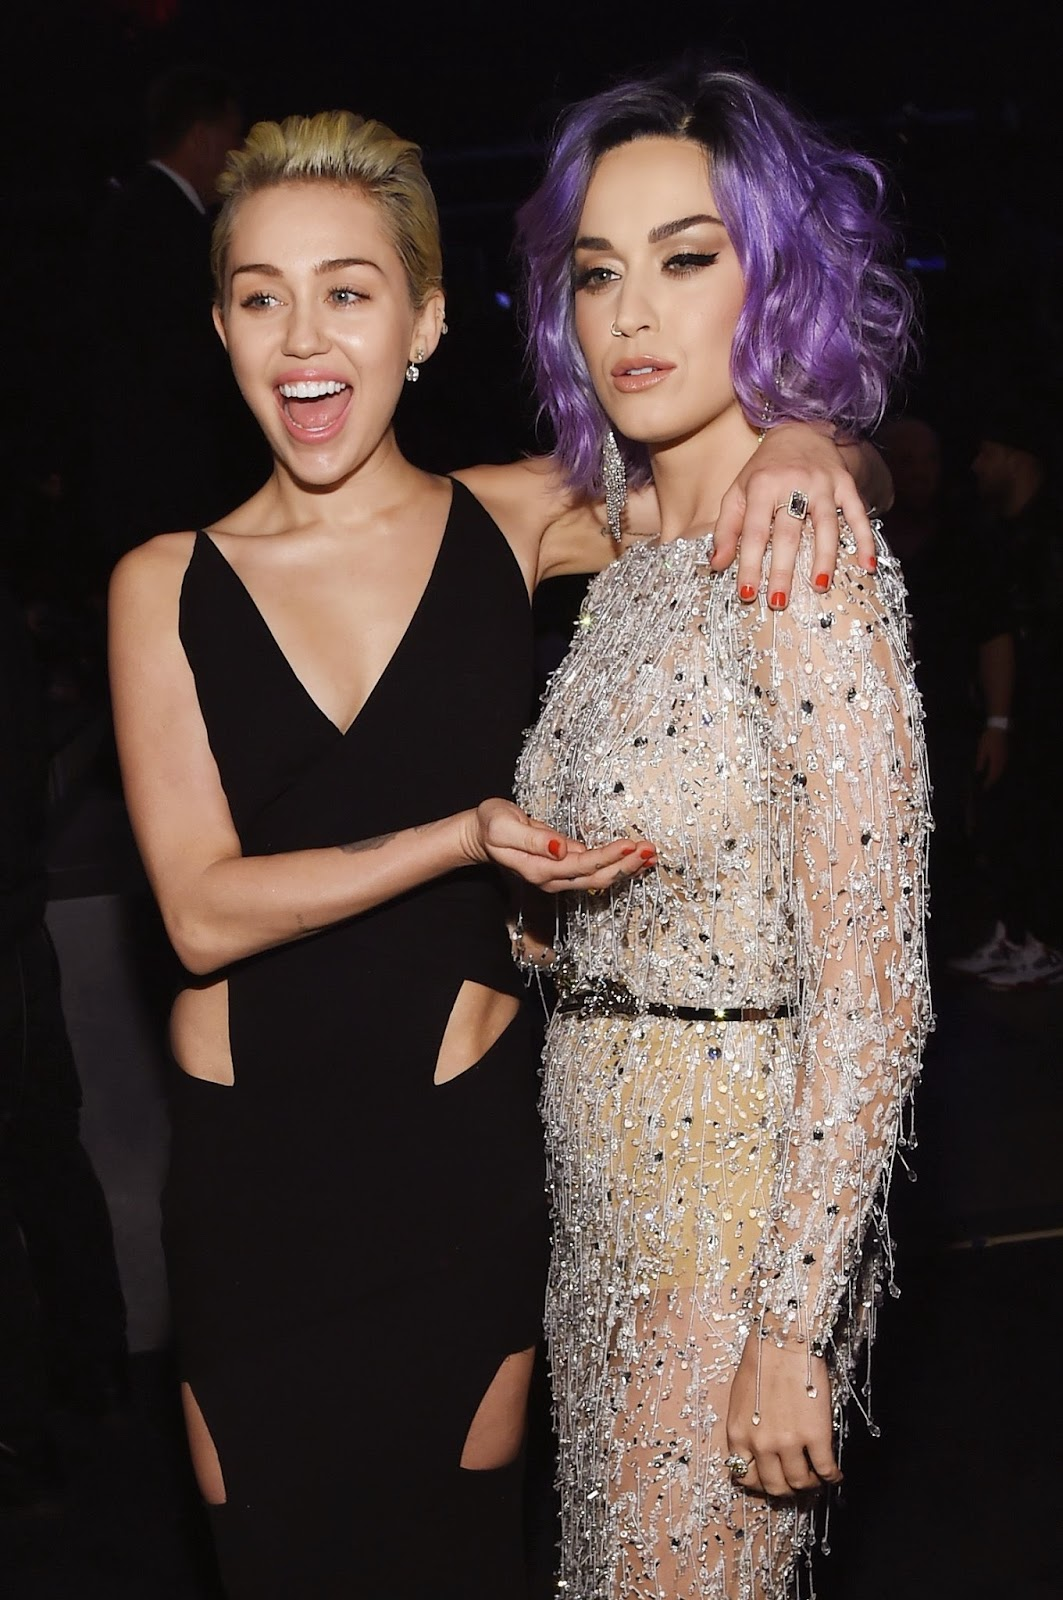 Miley Cyrus shows off cleavage in a plunging black gown at the 57th Annual Grammy Awards in LA